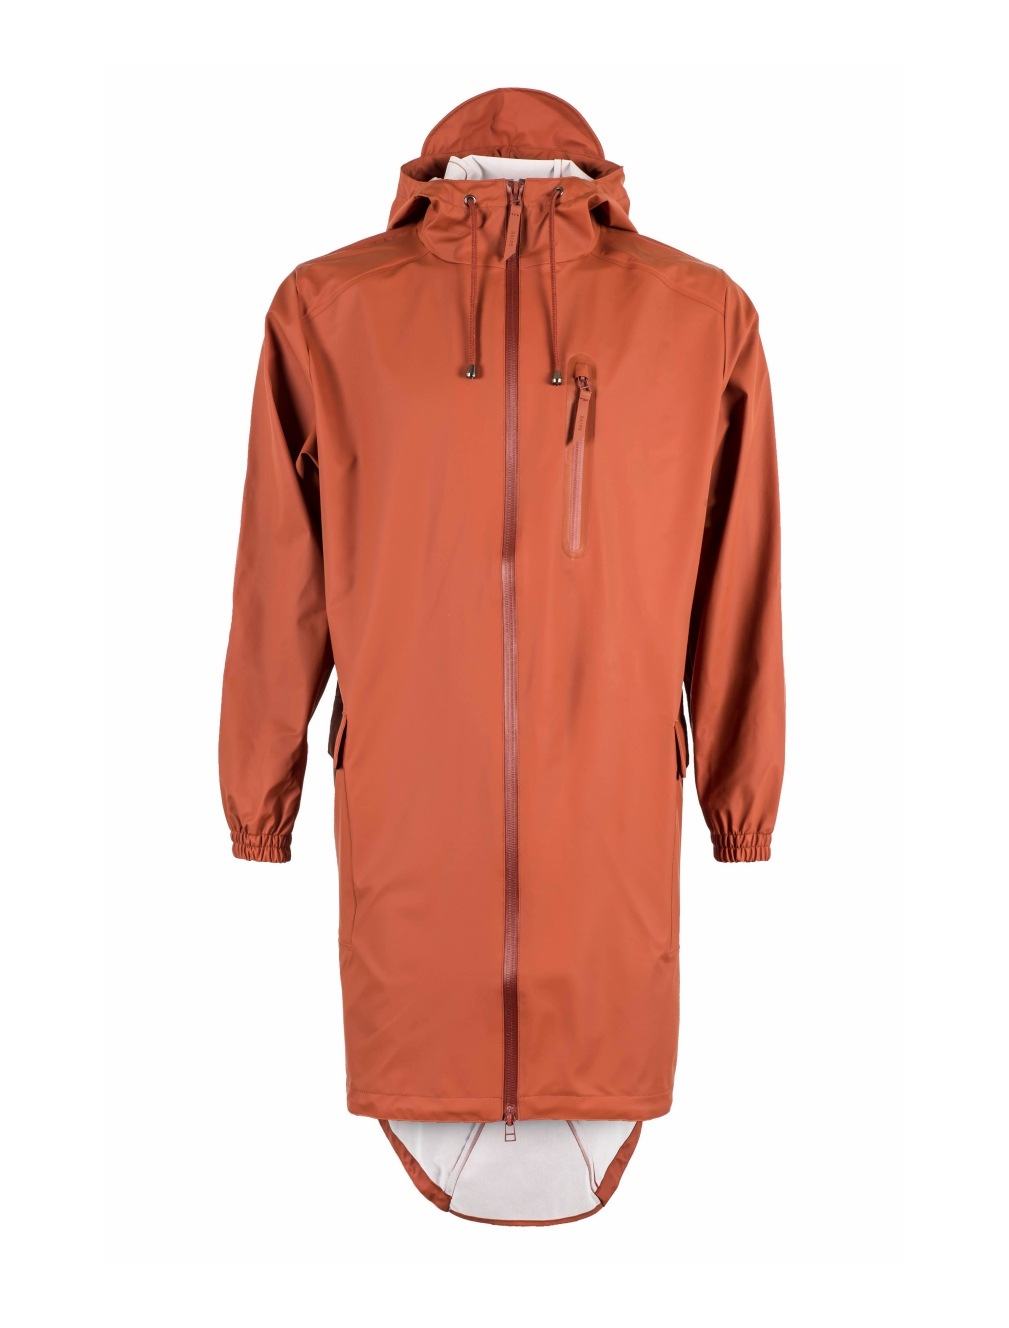 Rains Unisex Parka - Rust Orange